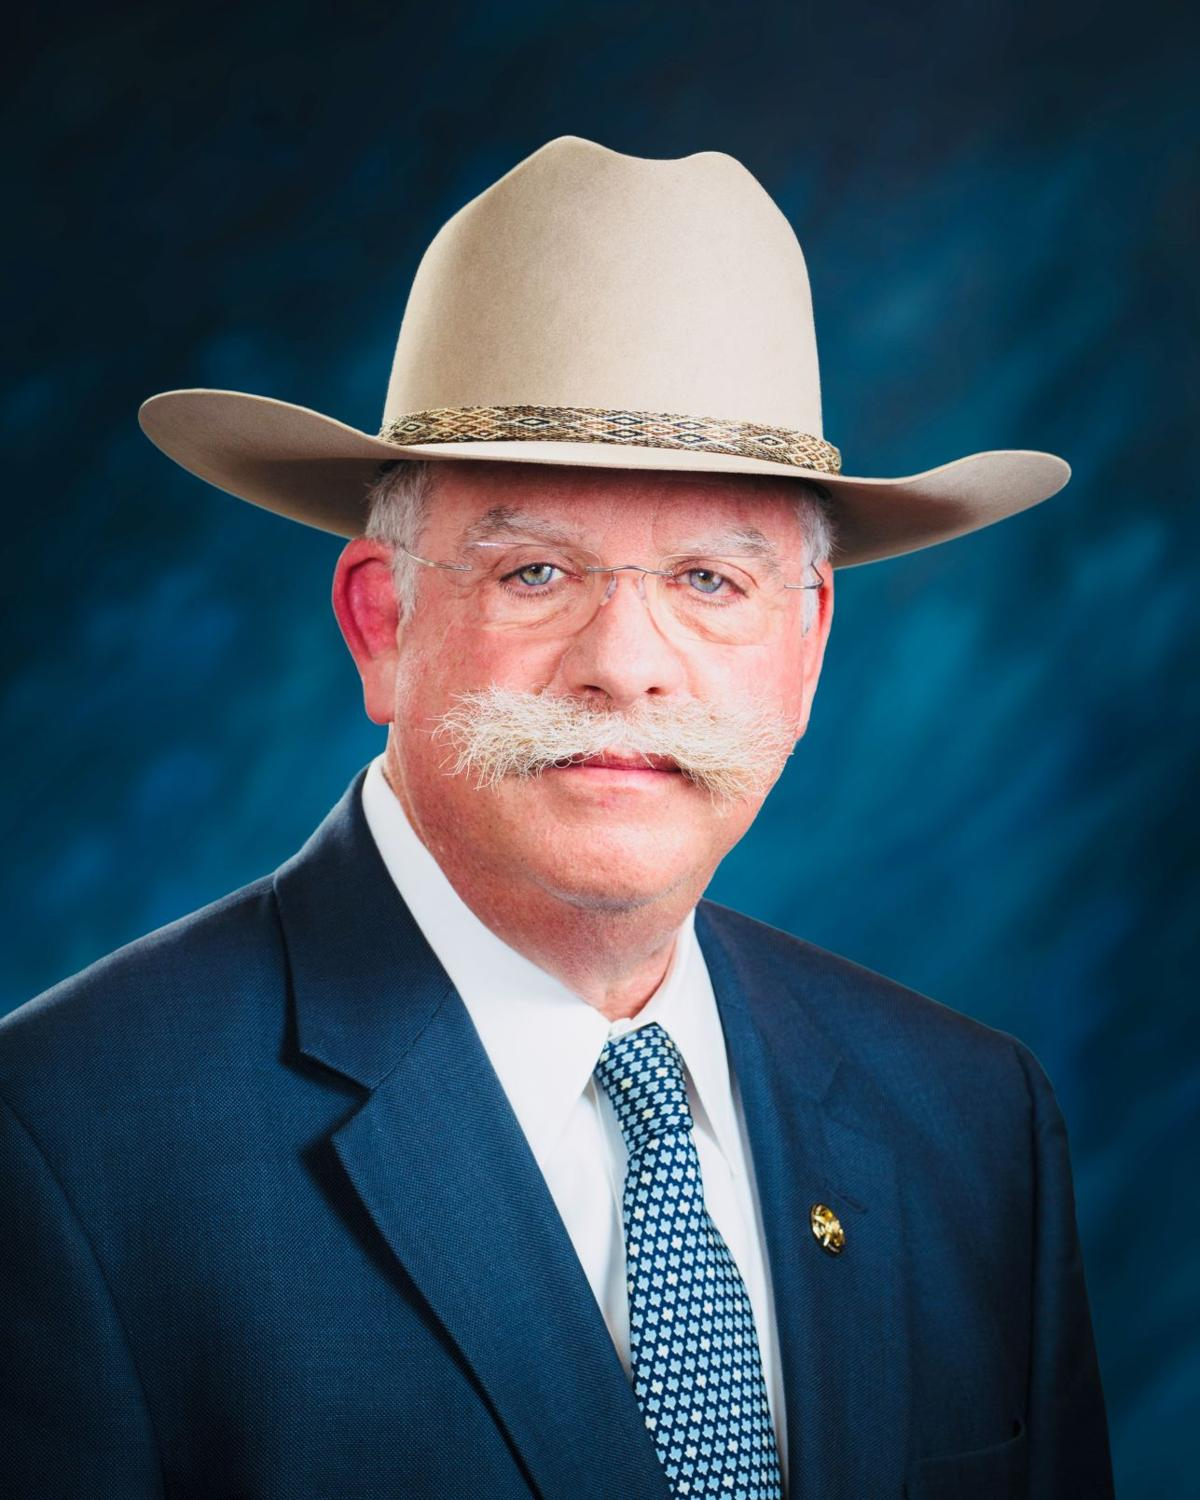 Victoria County Sheriff T. Michael O'Connor